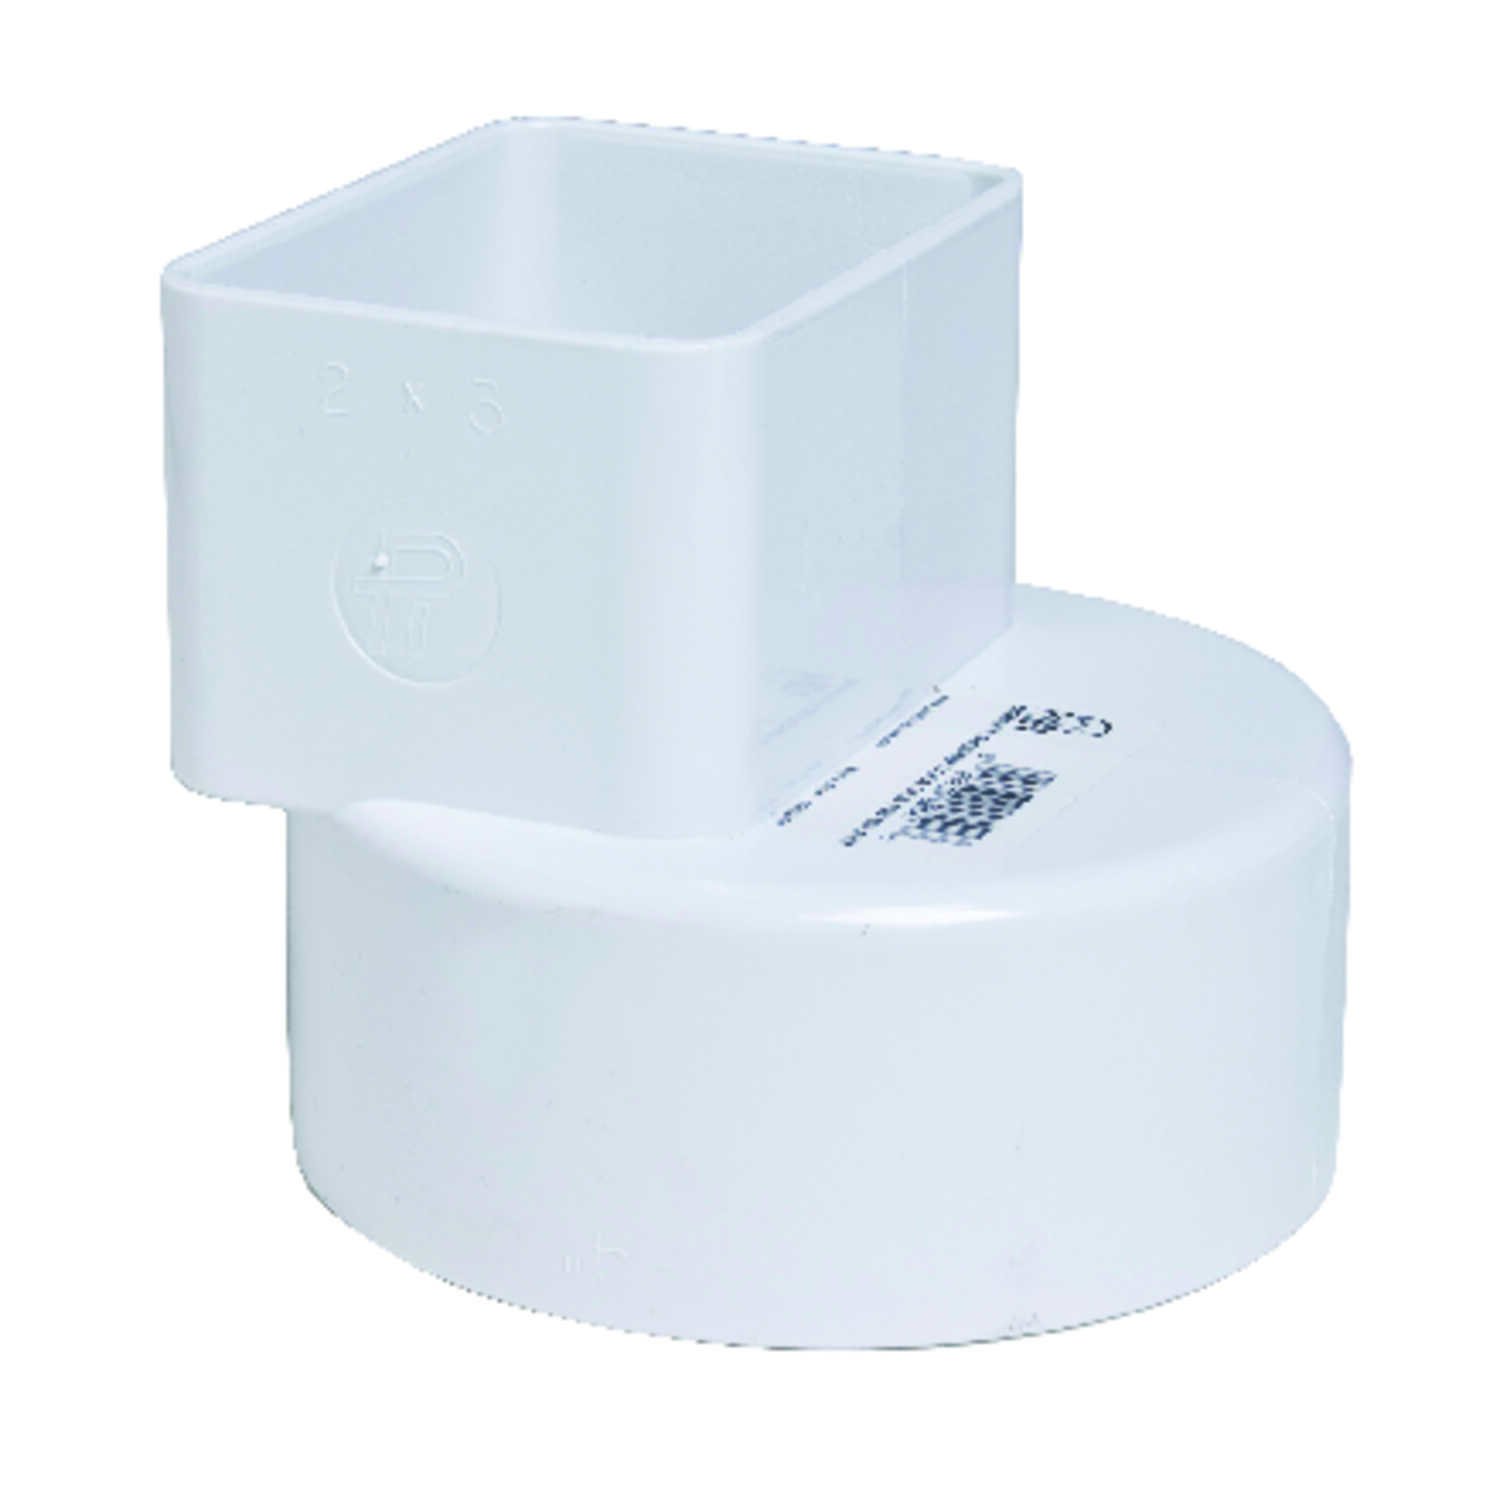 Plastic Trends  2 in. Hub   x 3 in. Dia. Female  PVC  Flush Downspout Adapter